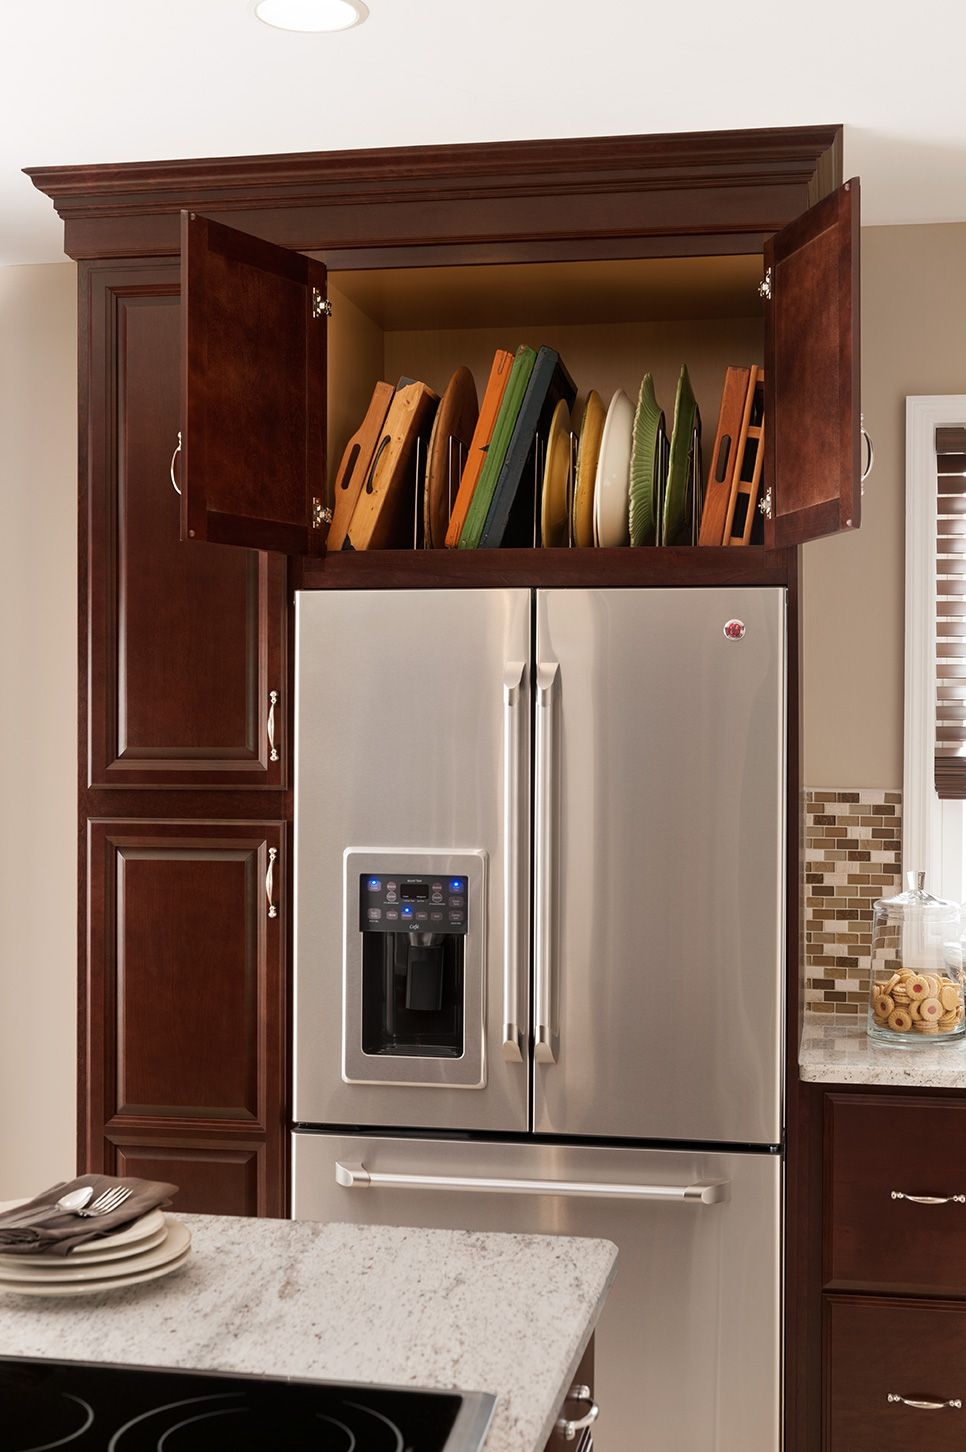 American Woodmark Cabinets Exclusively At The Home Depot Kitchen Remodel Small Cabinet Organization Cabinets Organization